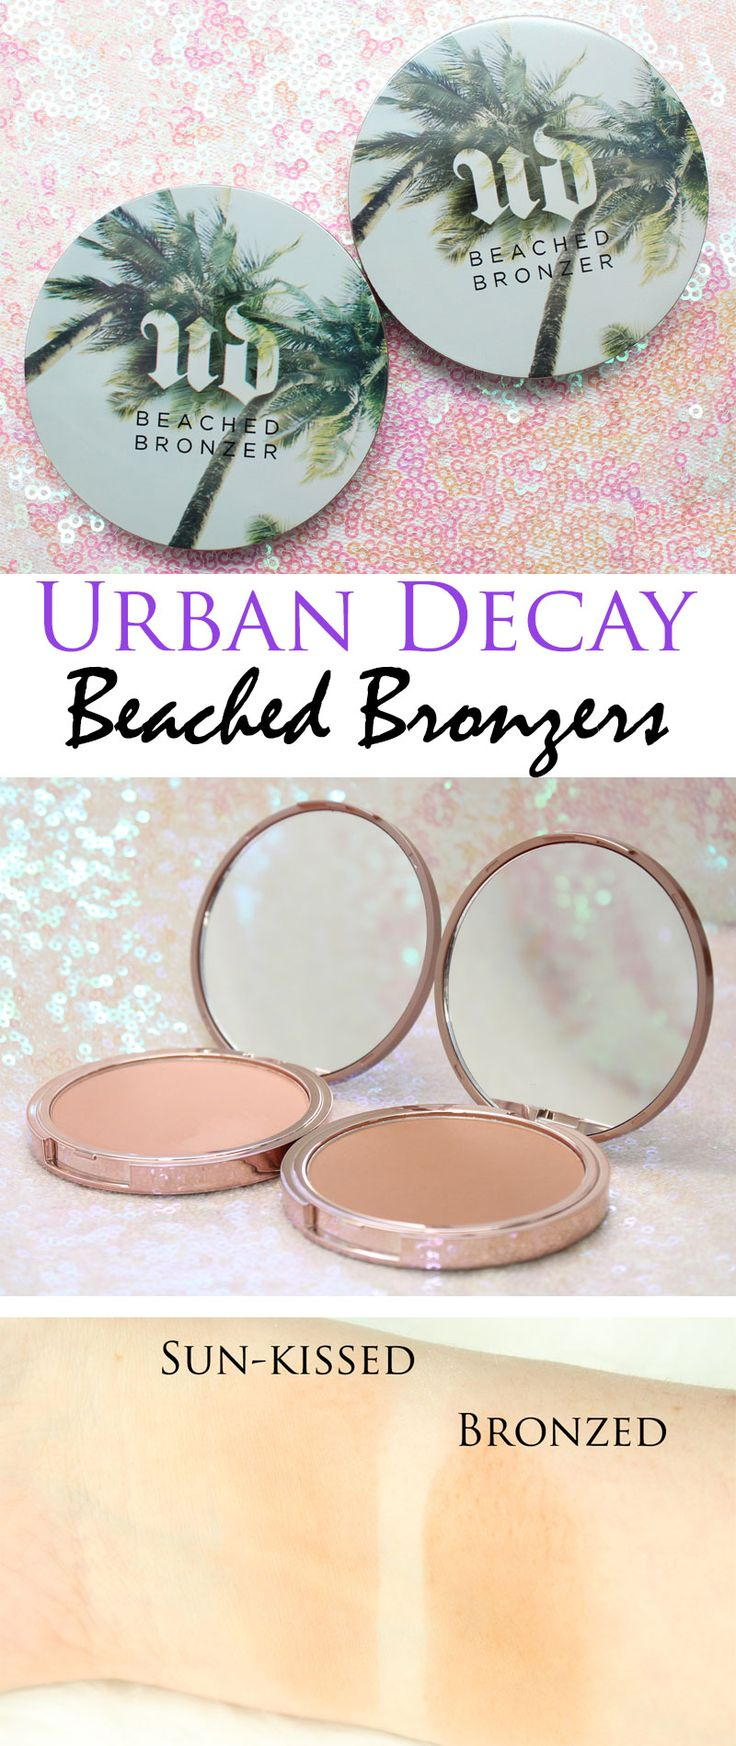 Urban Decay Summer 2016 Beached Bronzers are perfect fo summer!